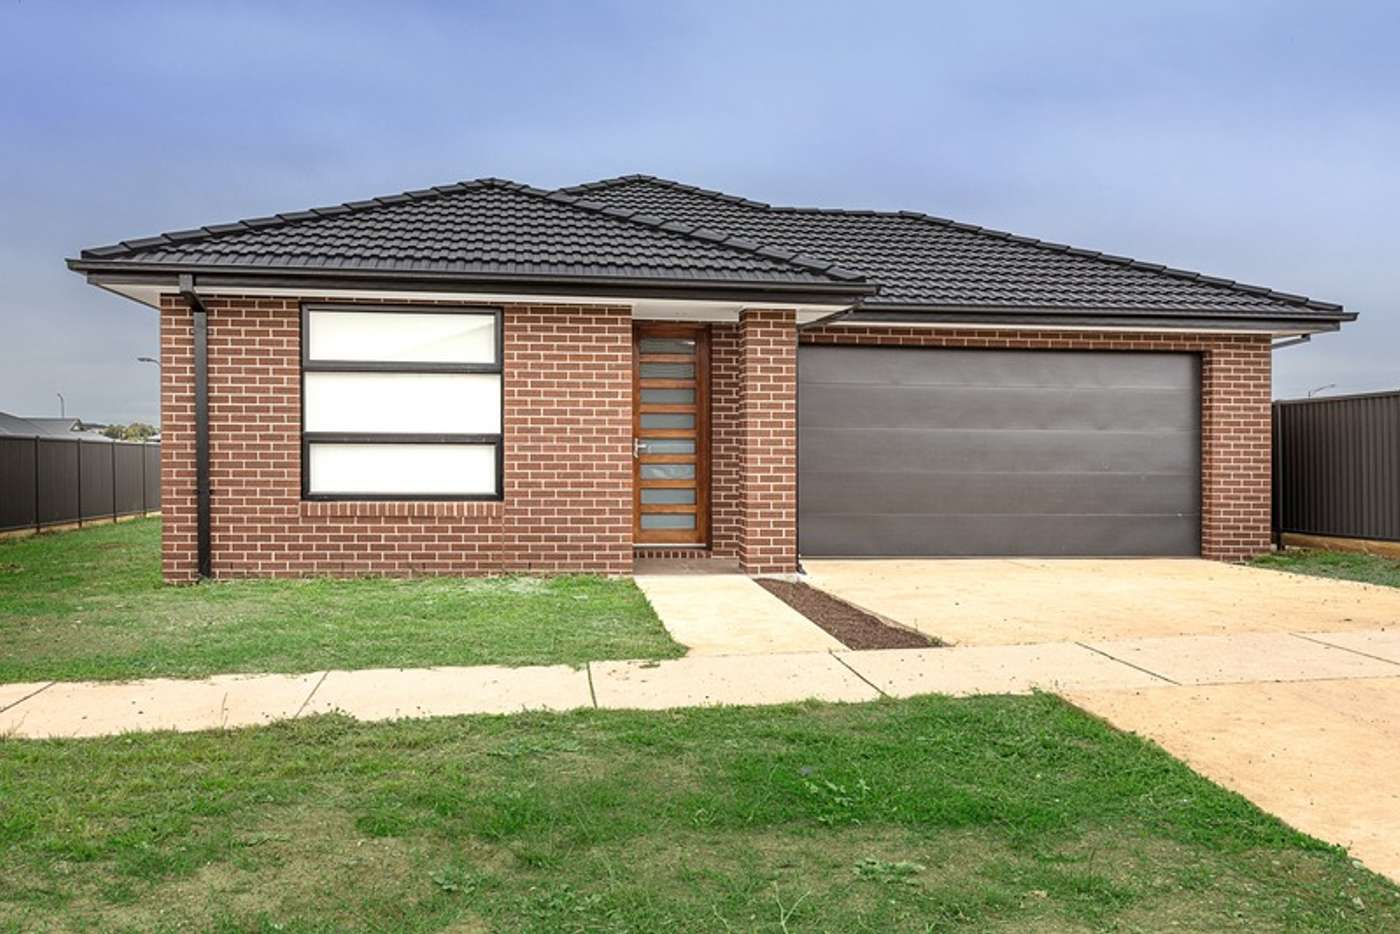 Main view of Homely house listing, 1 Beaston Way, Alfredton VIC 3350